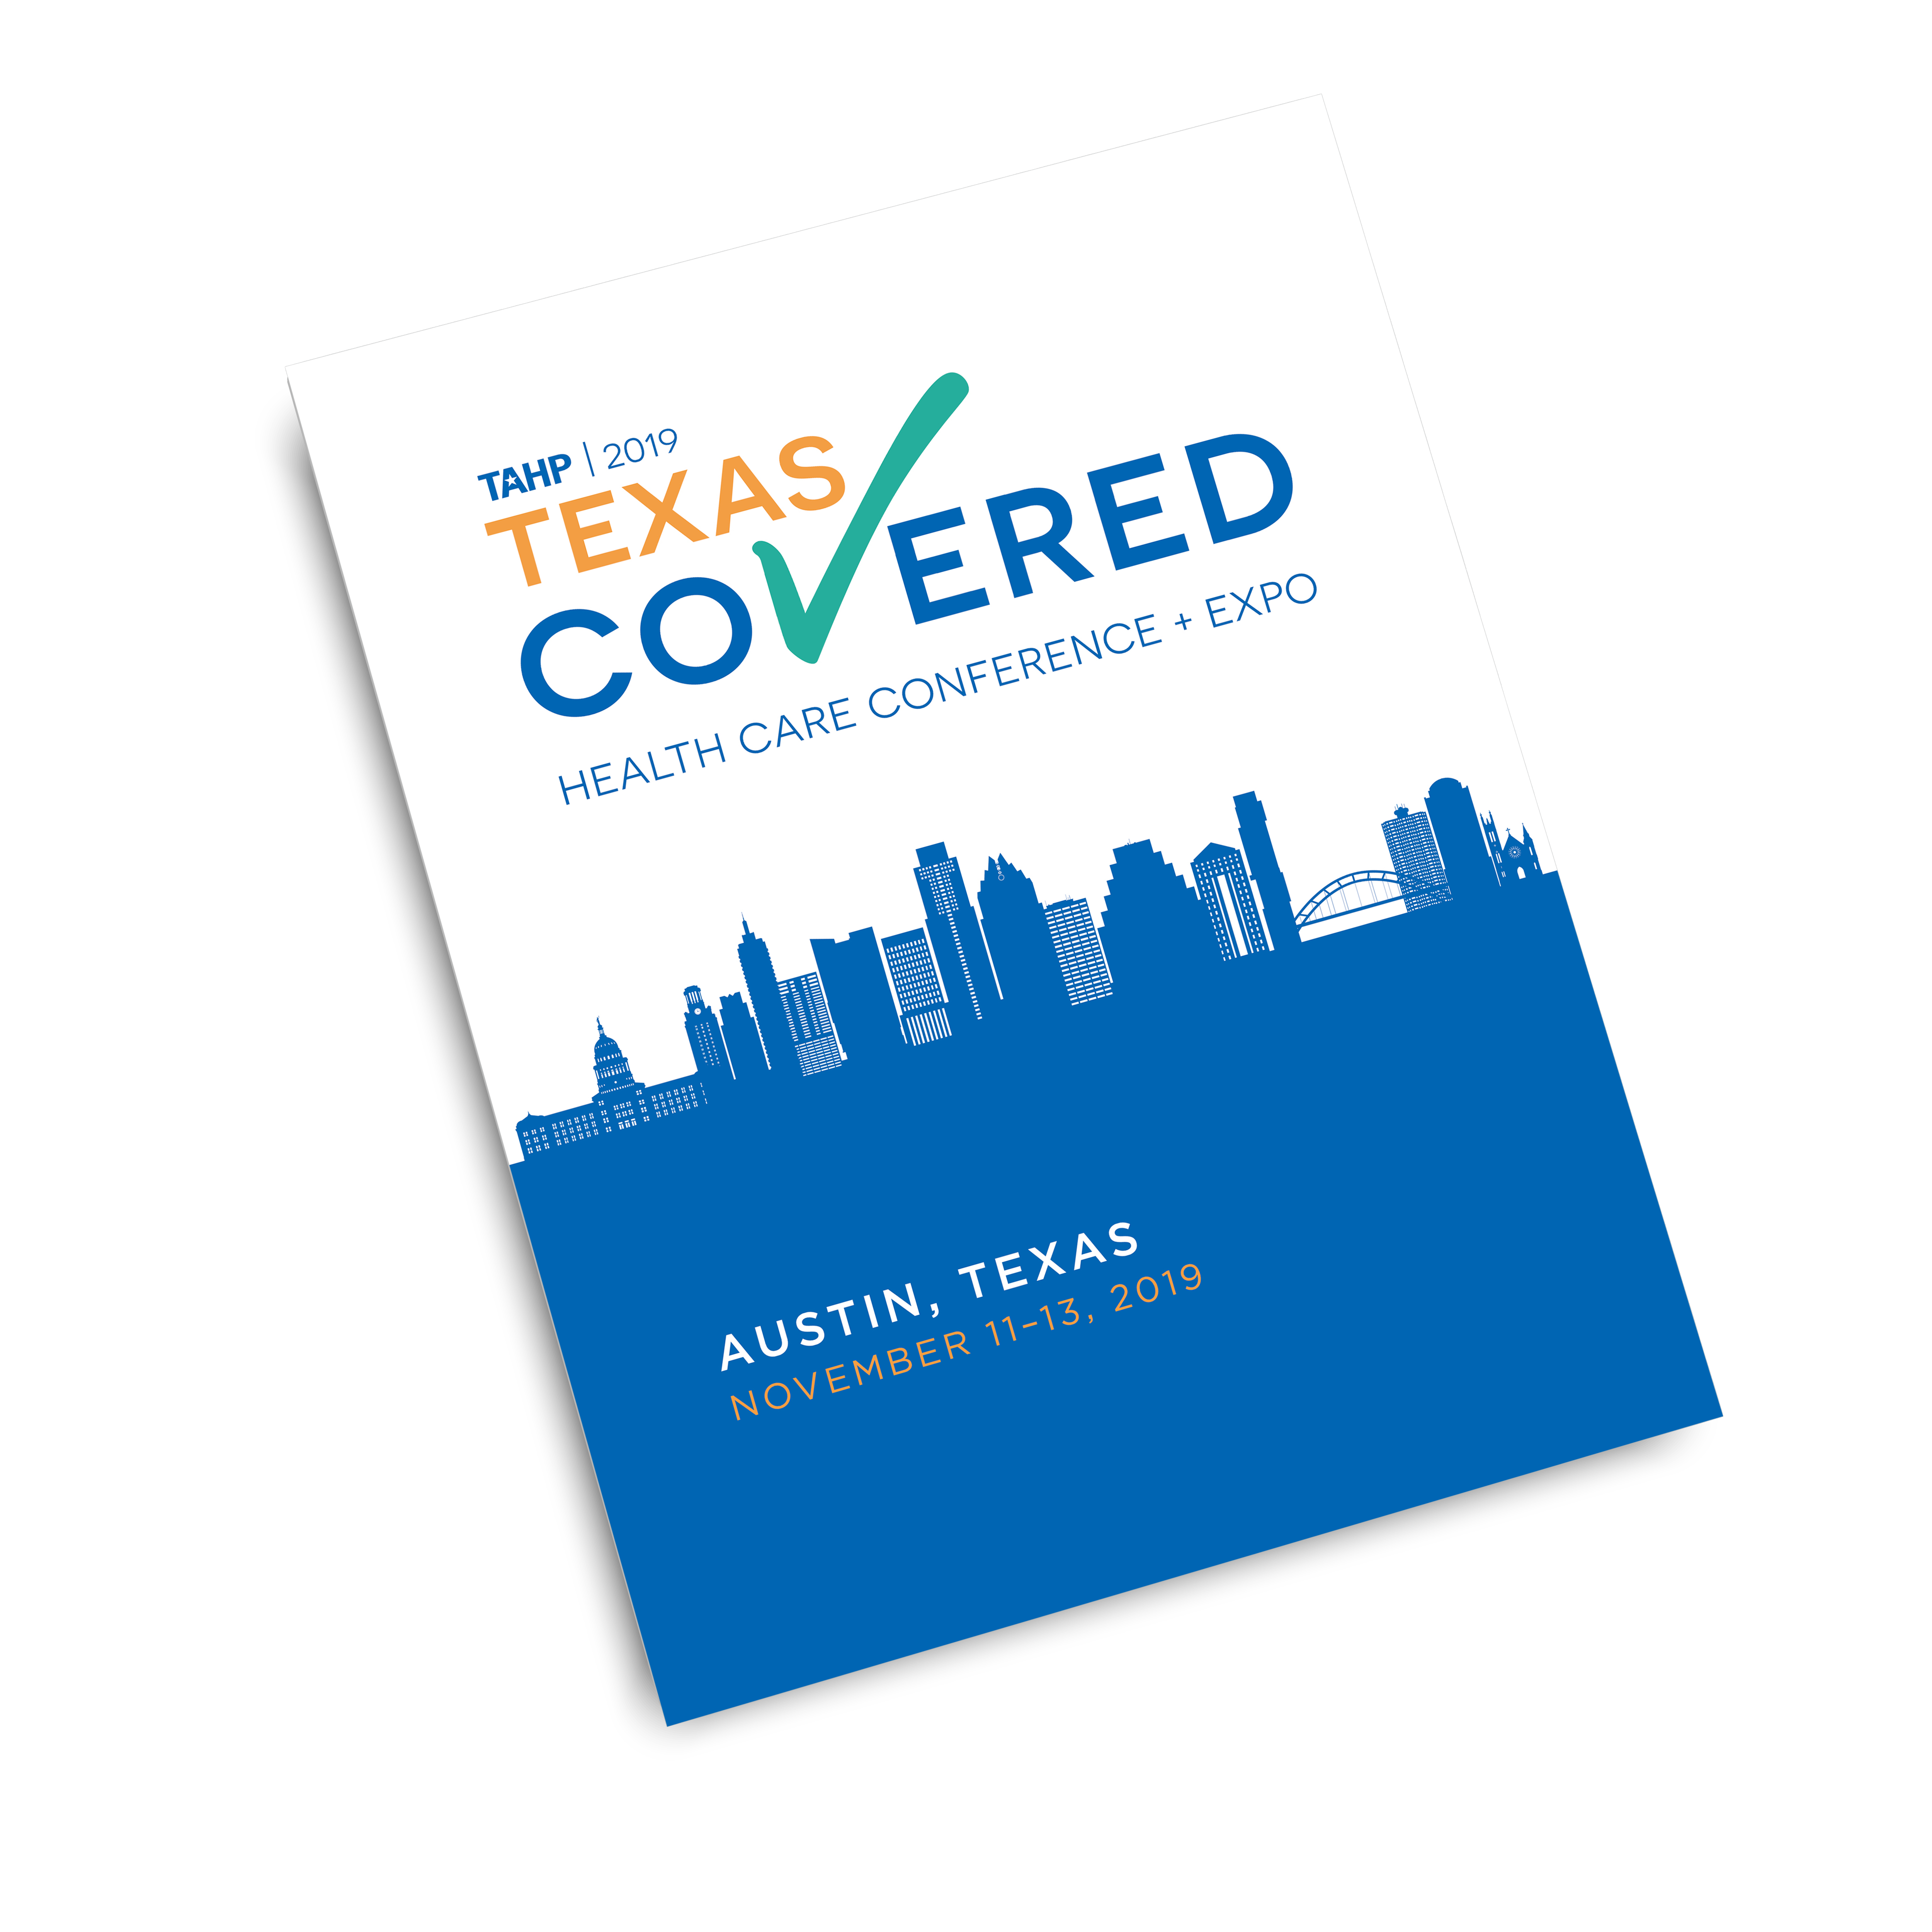 TAHP Texas Covered Conference + Expo